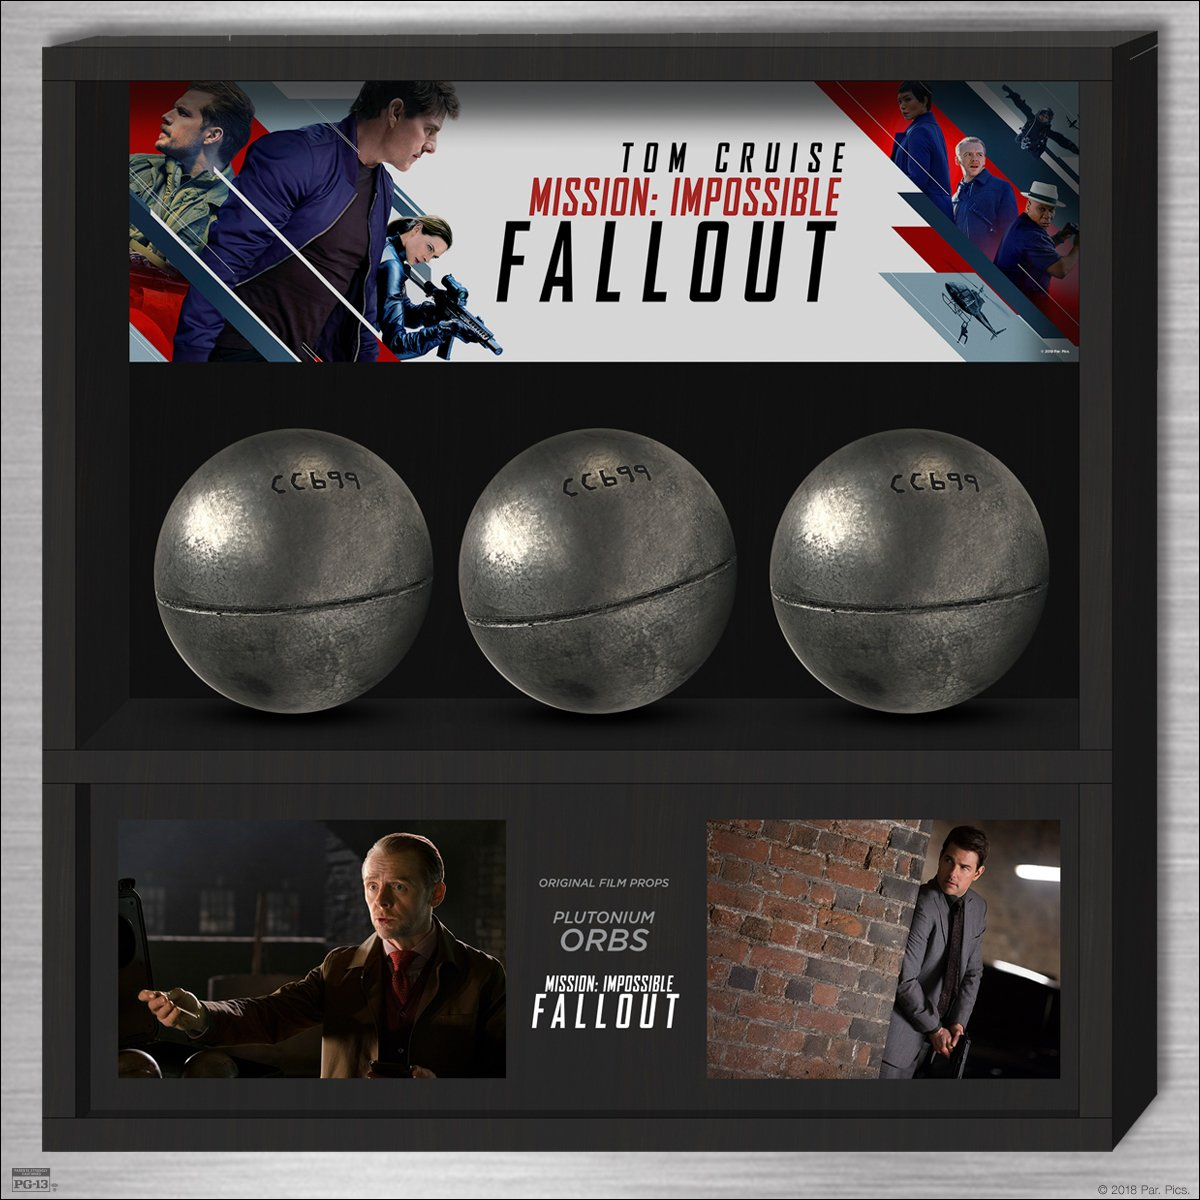 Last chance! FOLLOW &amp; RT for your chance to win the set of plutonium orb props from #MissionImpossible Fallout! Get tix now:  http:// amc.film/2KkSrEb  &nbsp;  <br>http://pic.twitter.com/fzU1VOXQnn